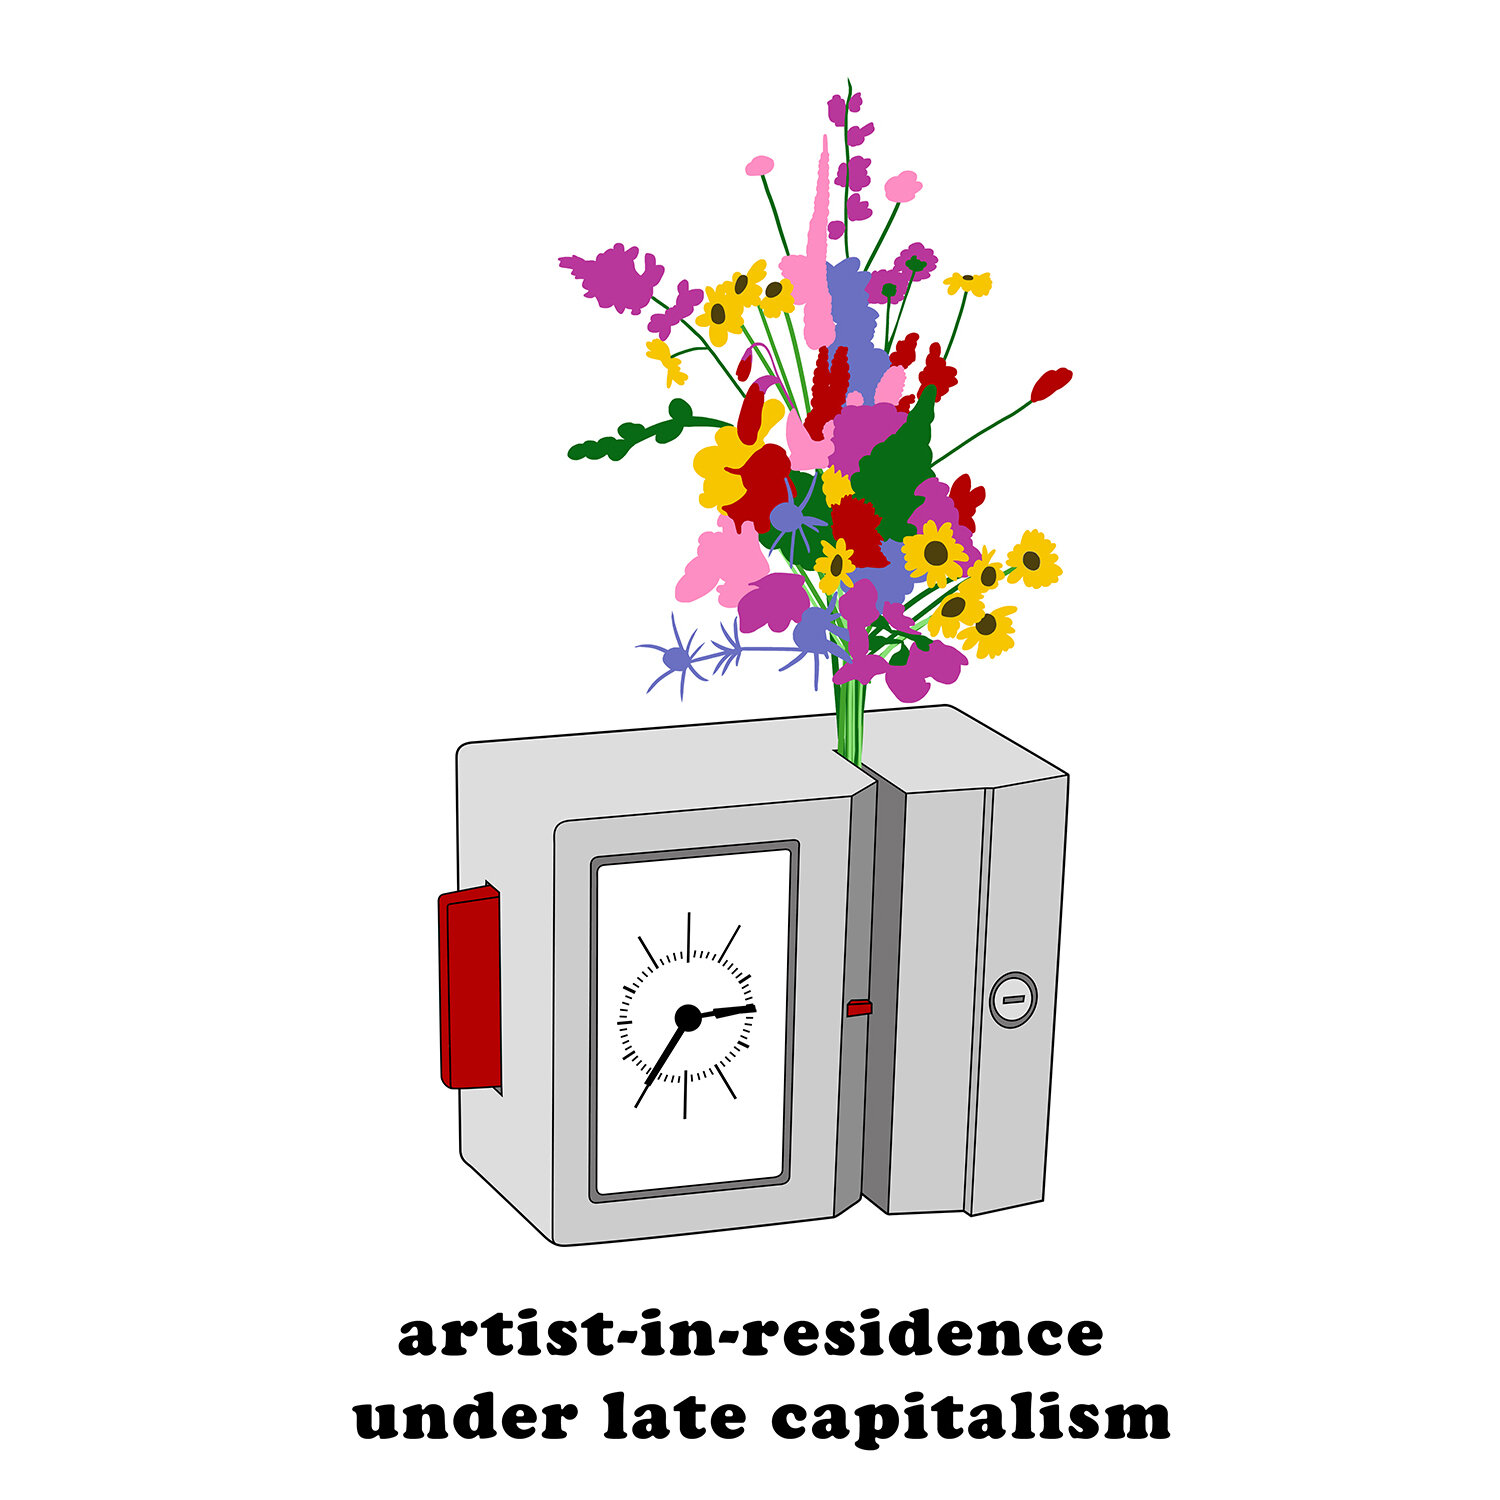 """artist-in-residence - For this commission, the client came up with the phrase """"Artist-in-residence under late capitalism"""". They wanted an image to reflect the idea of having a creative practice being hampered by a day-job. And then the creative practice retaliates"""